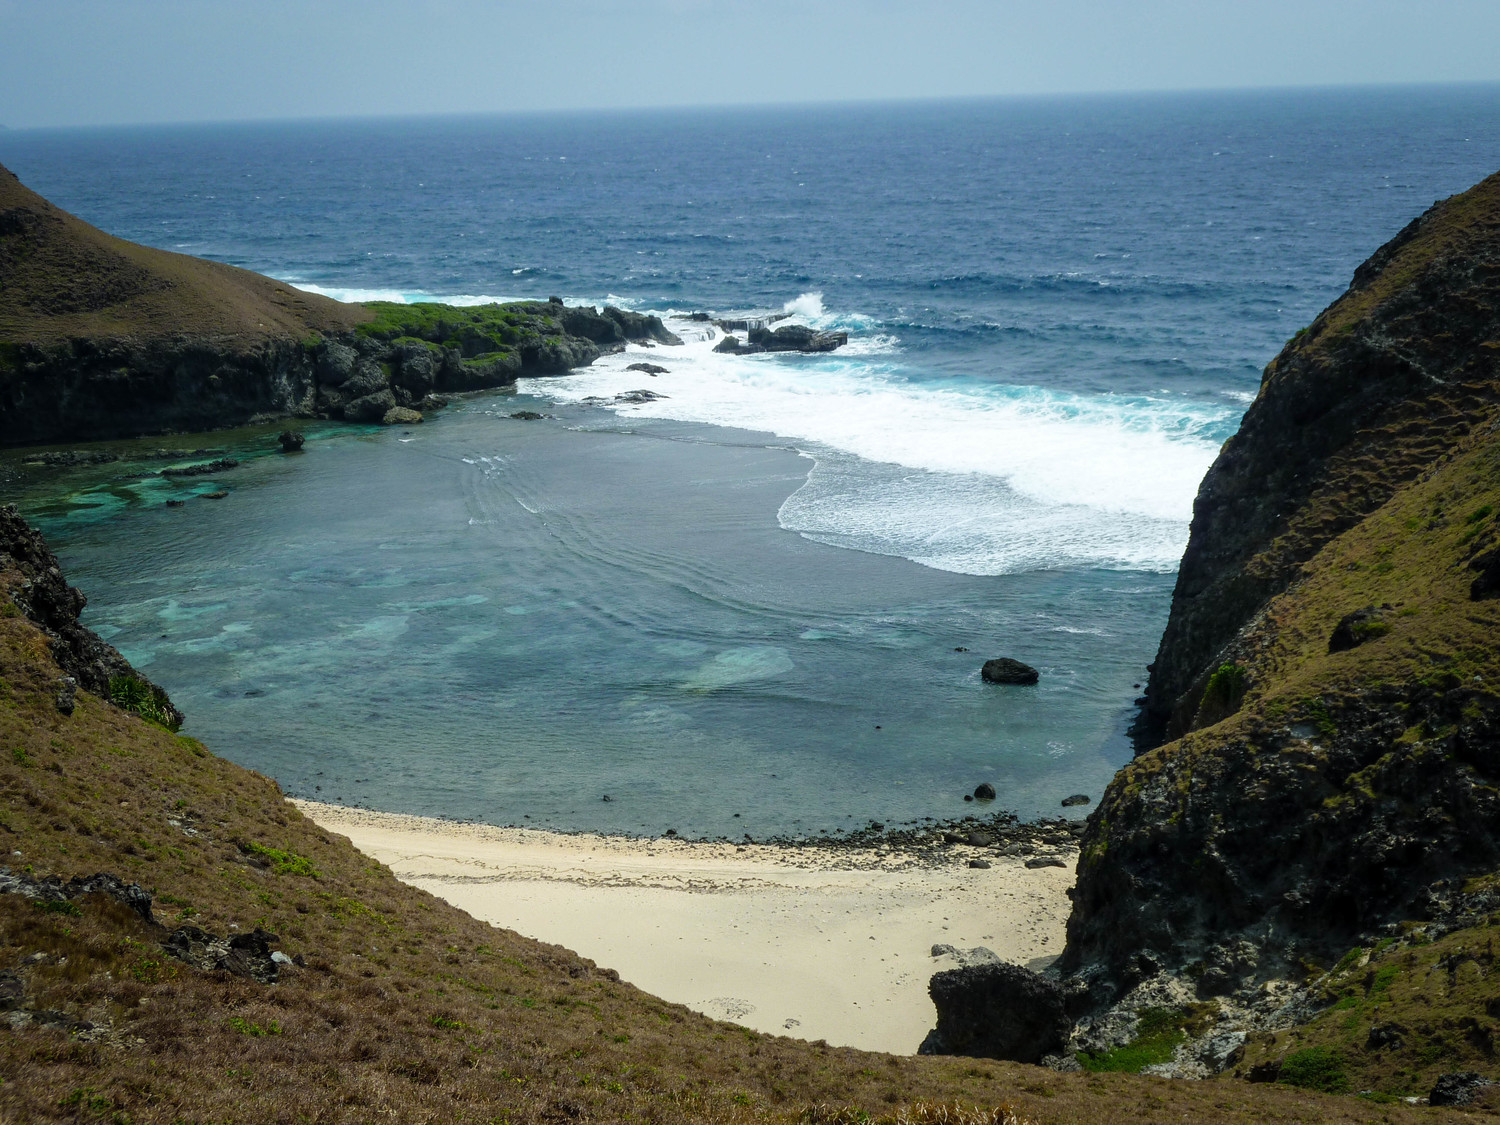 Enjoy the scenery atop one of Sabtang's famous beaches